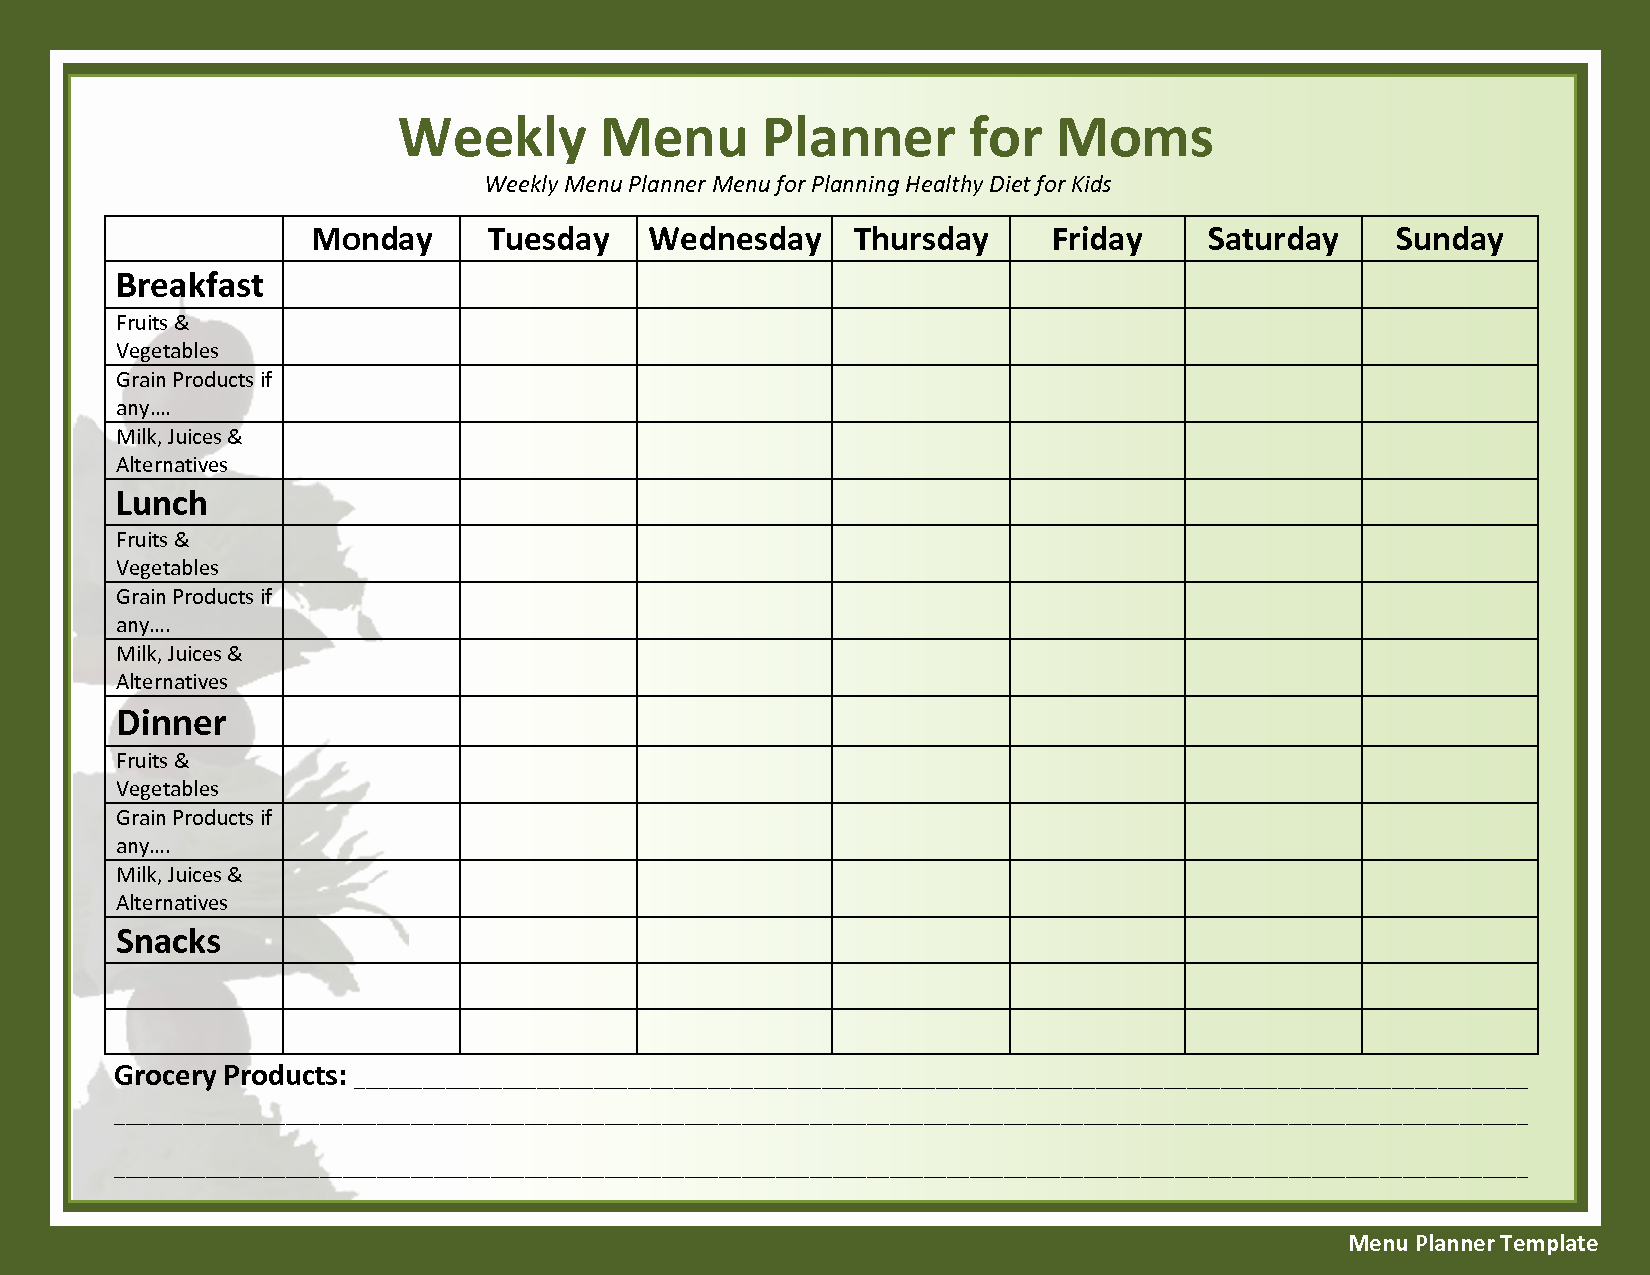 Weekly Meal Planning Template Free Awesome Weekly Menu Template